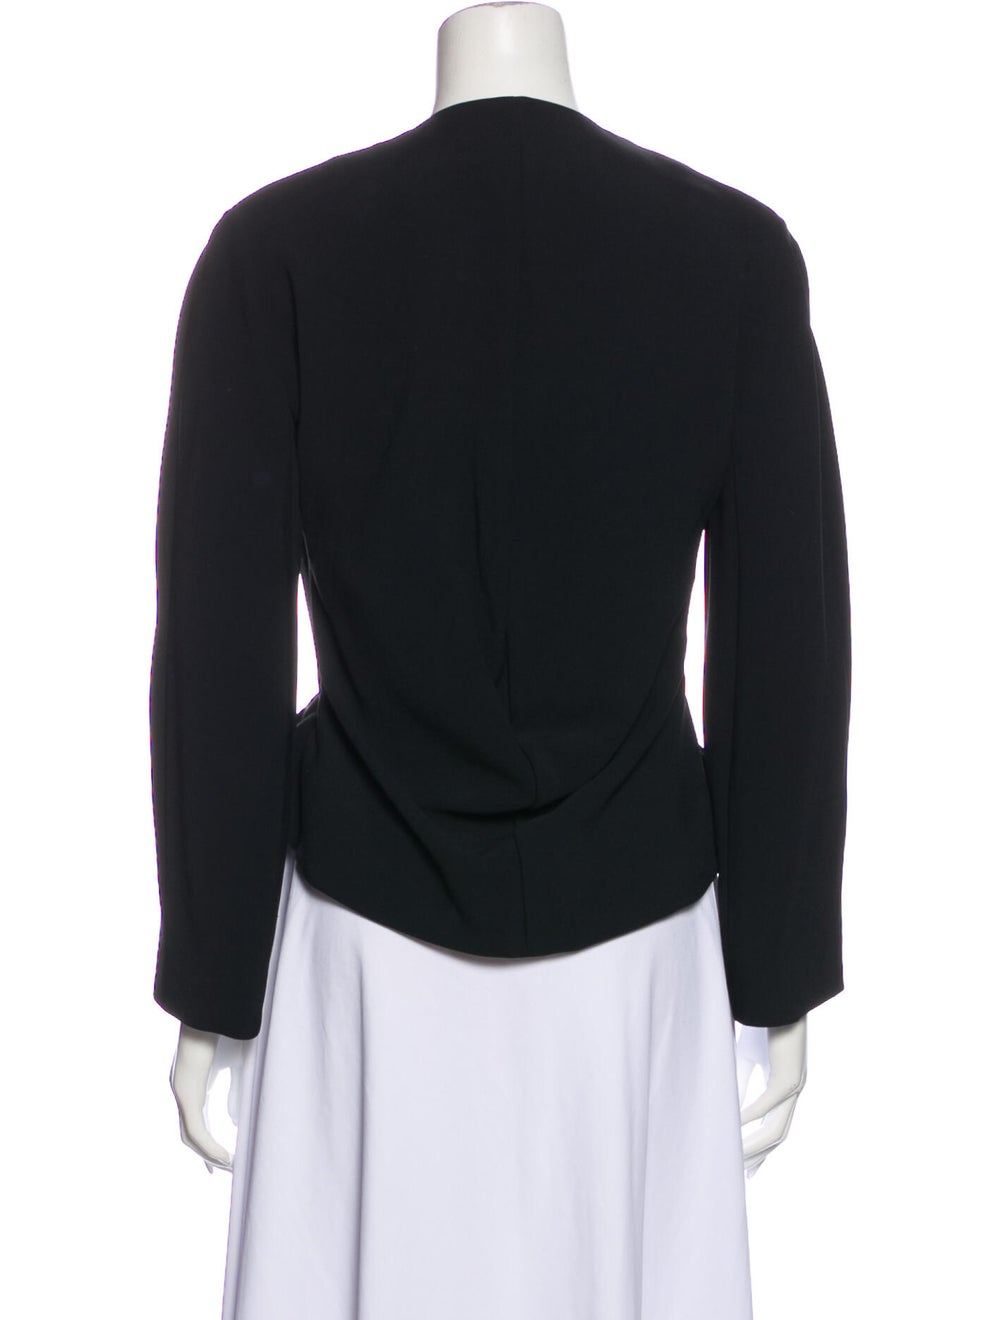 Balenciaga Evening Jacket Black - image 3